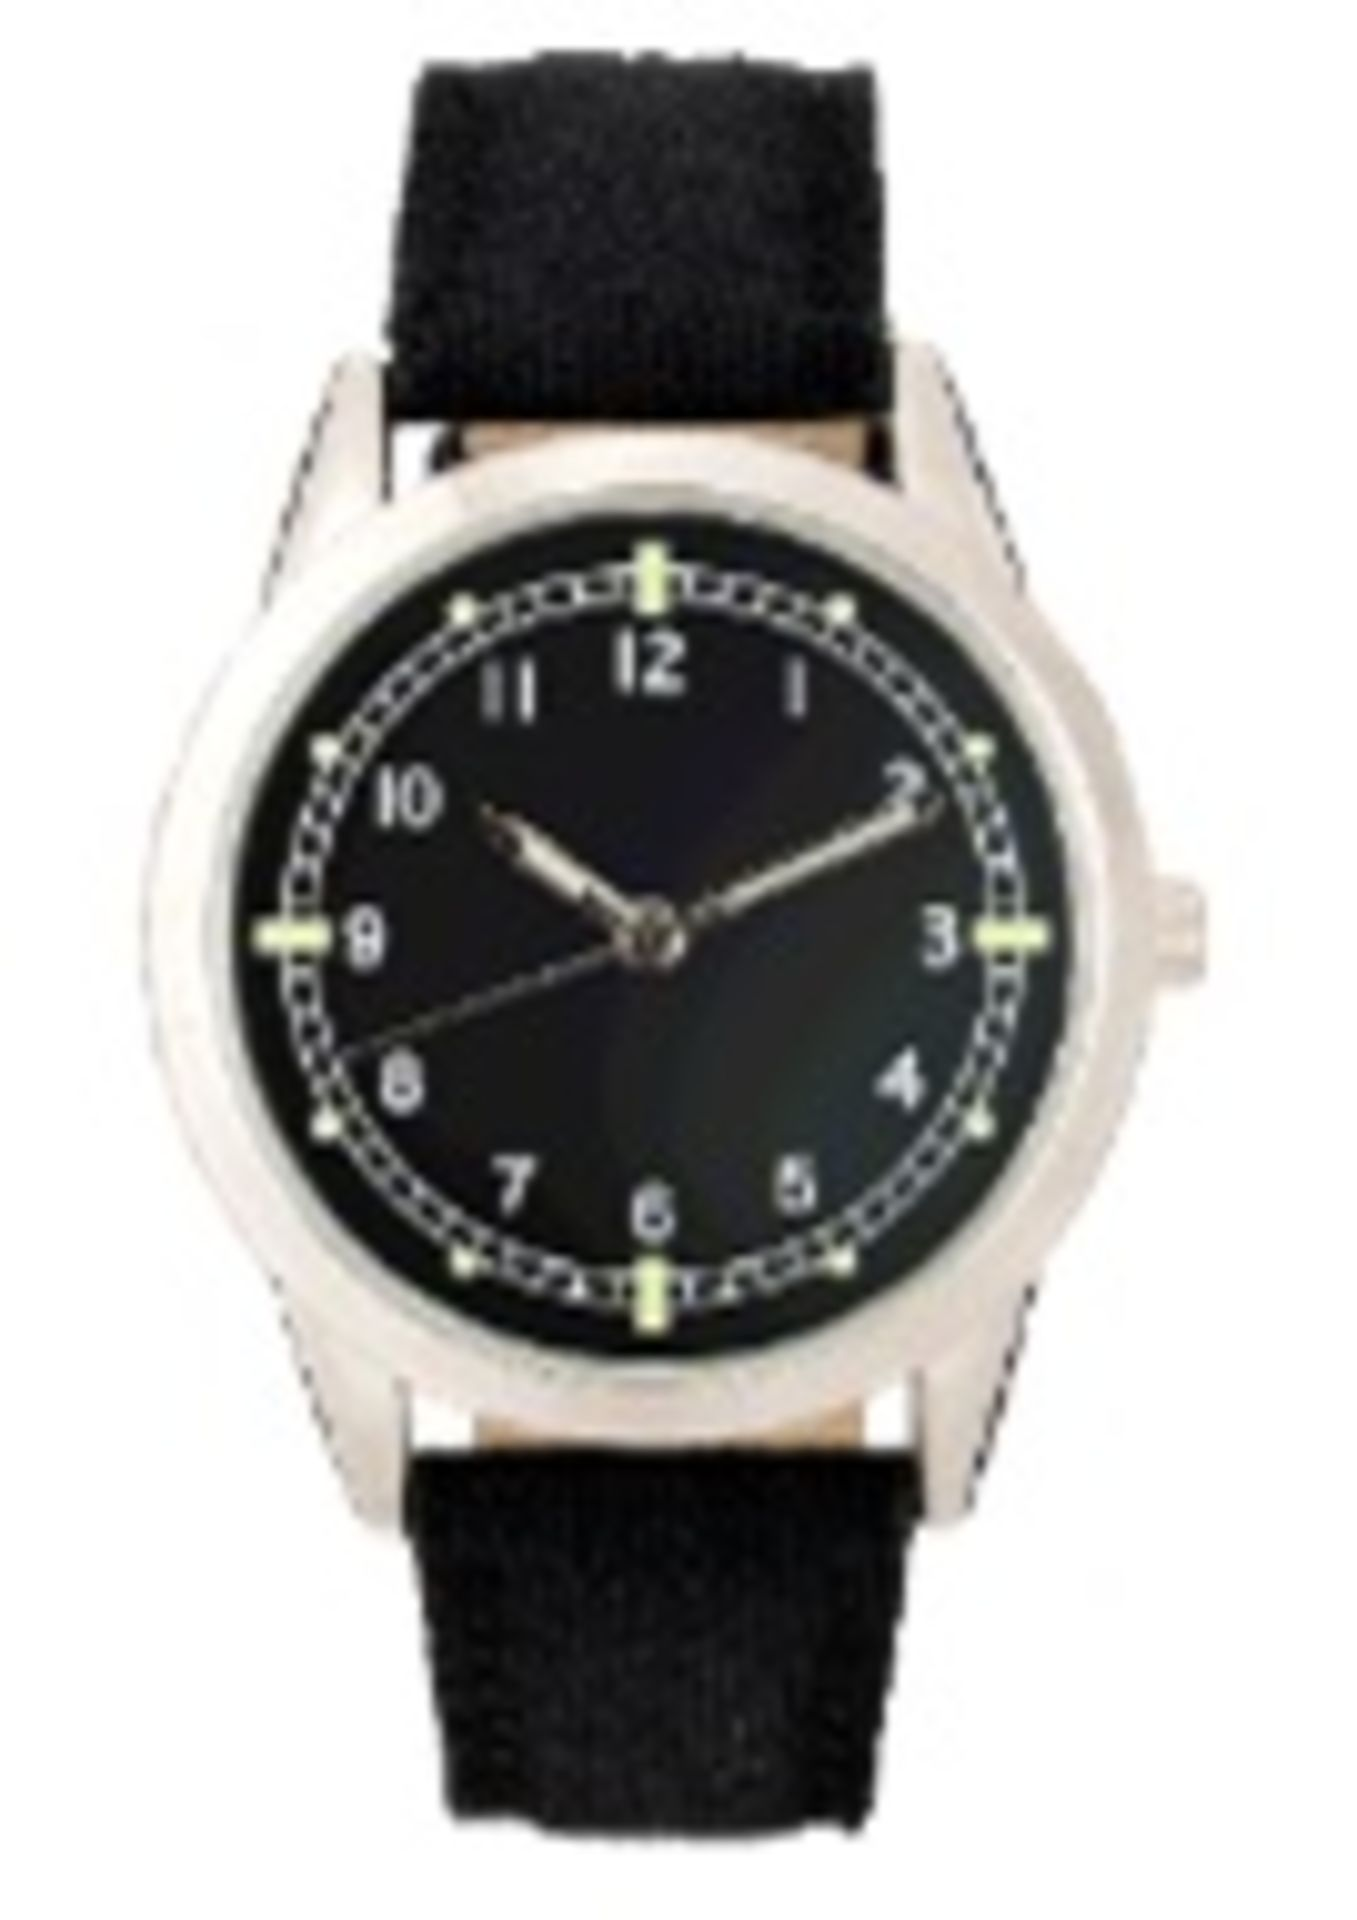 + VAT Brand New Gents 1950s Royal Airforce Pilot Watch with Engraved Back in Presentation Box